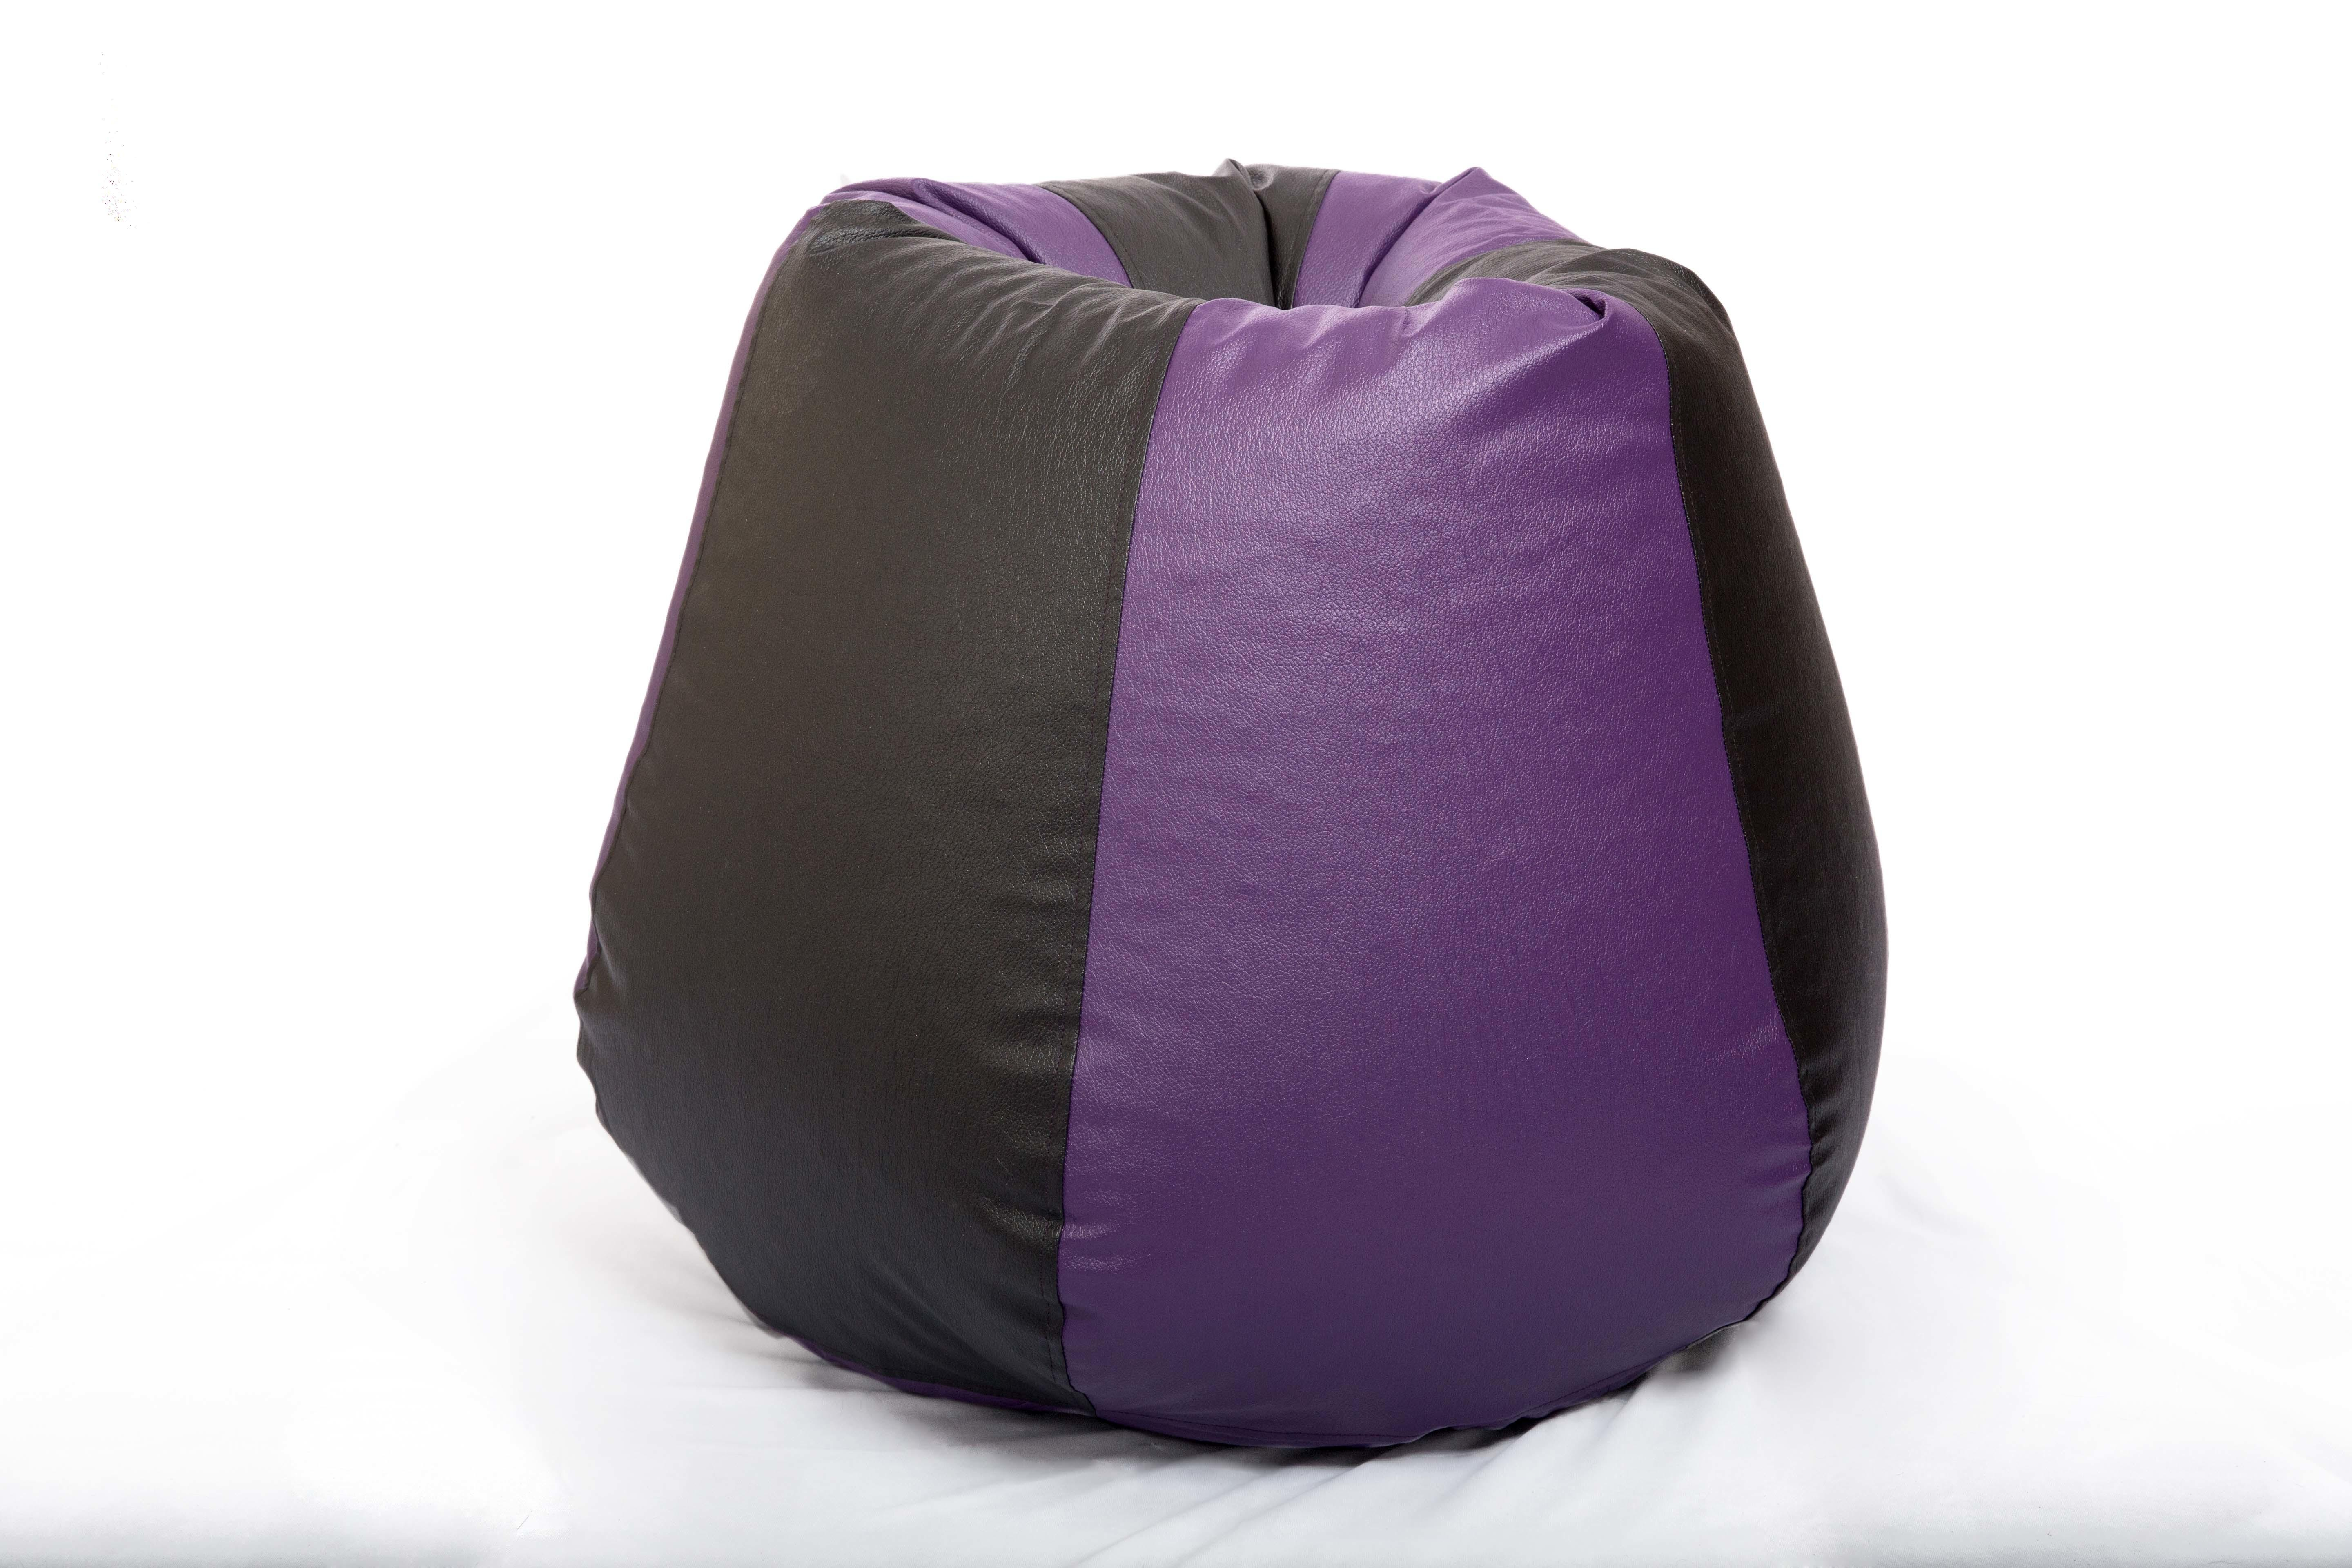 Styleco Xxl Modern Classic Bean Bag Cover Without Beans